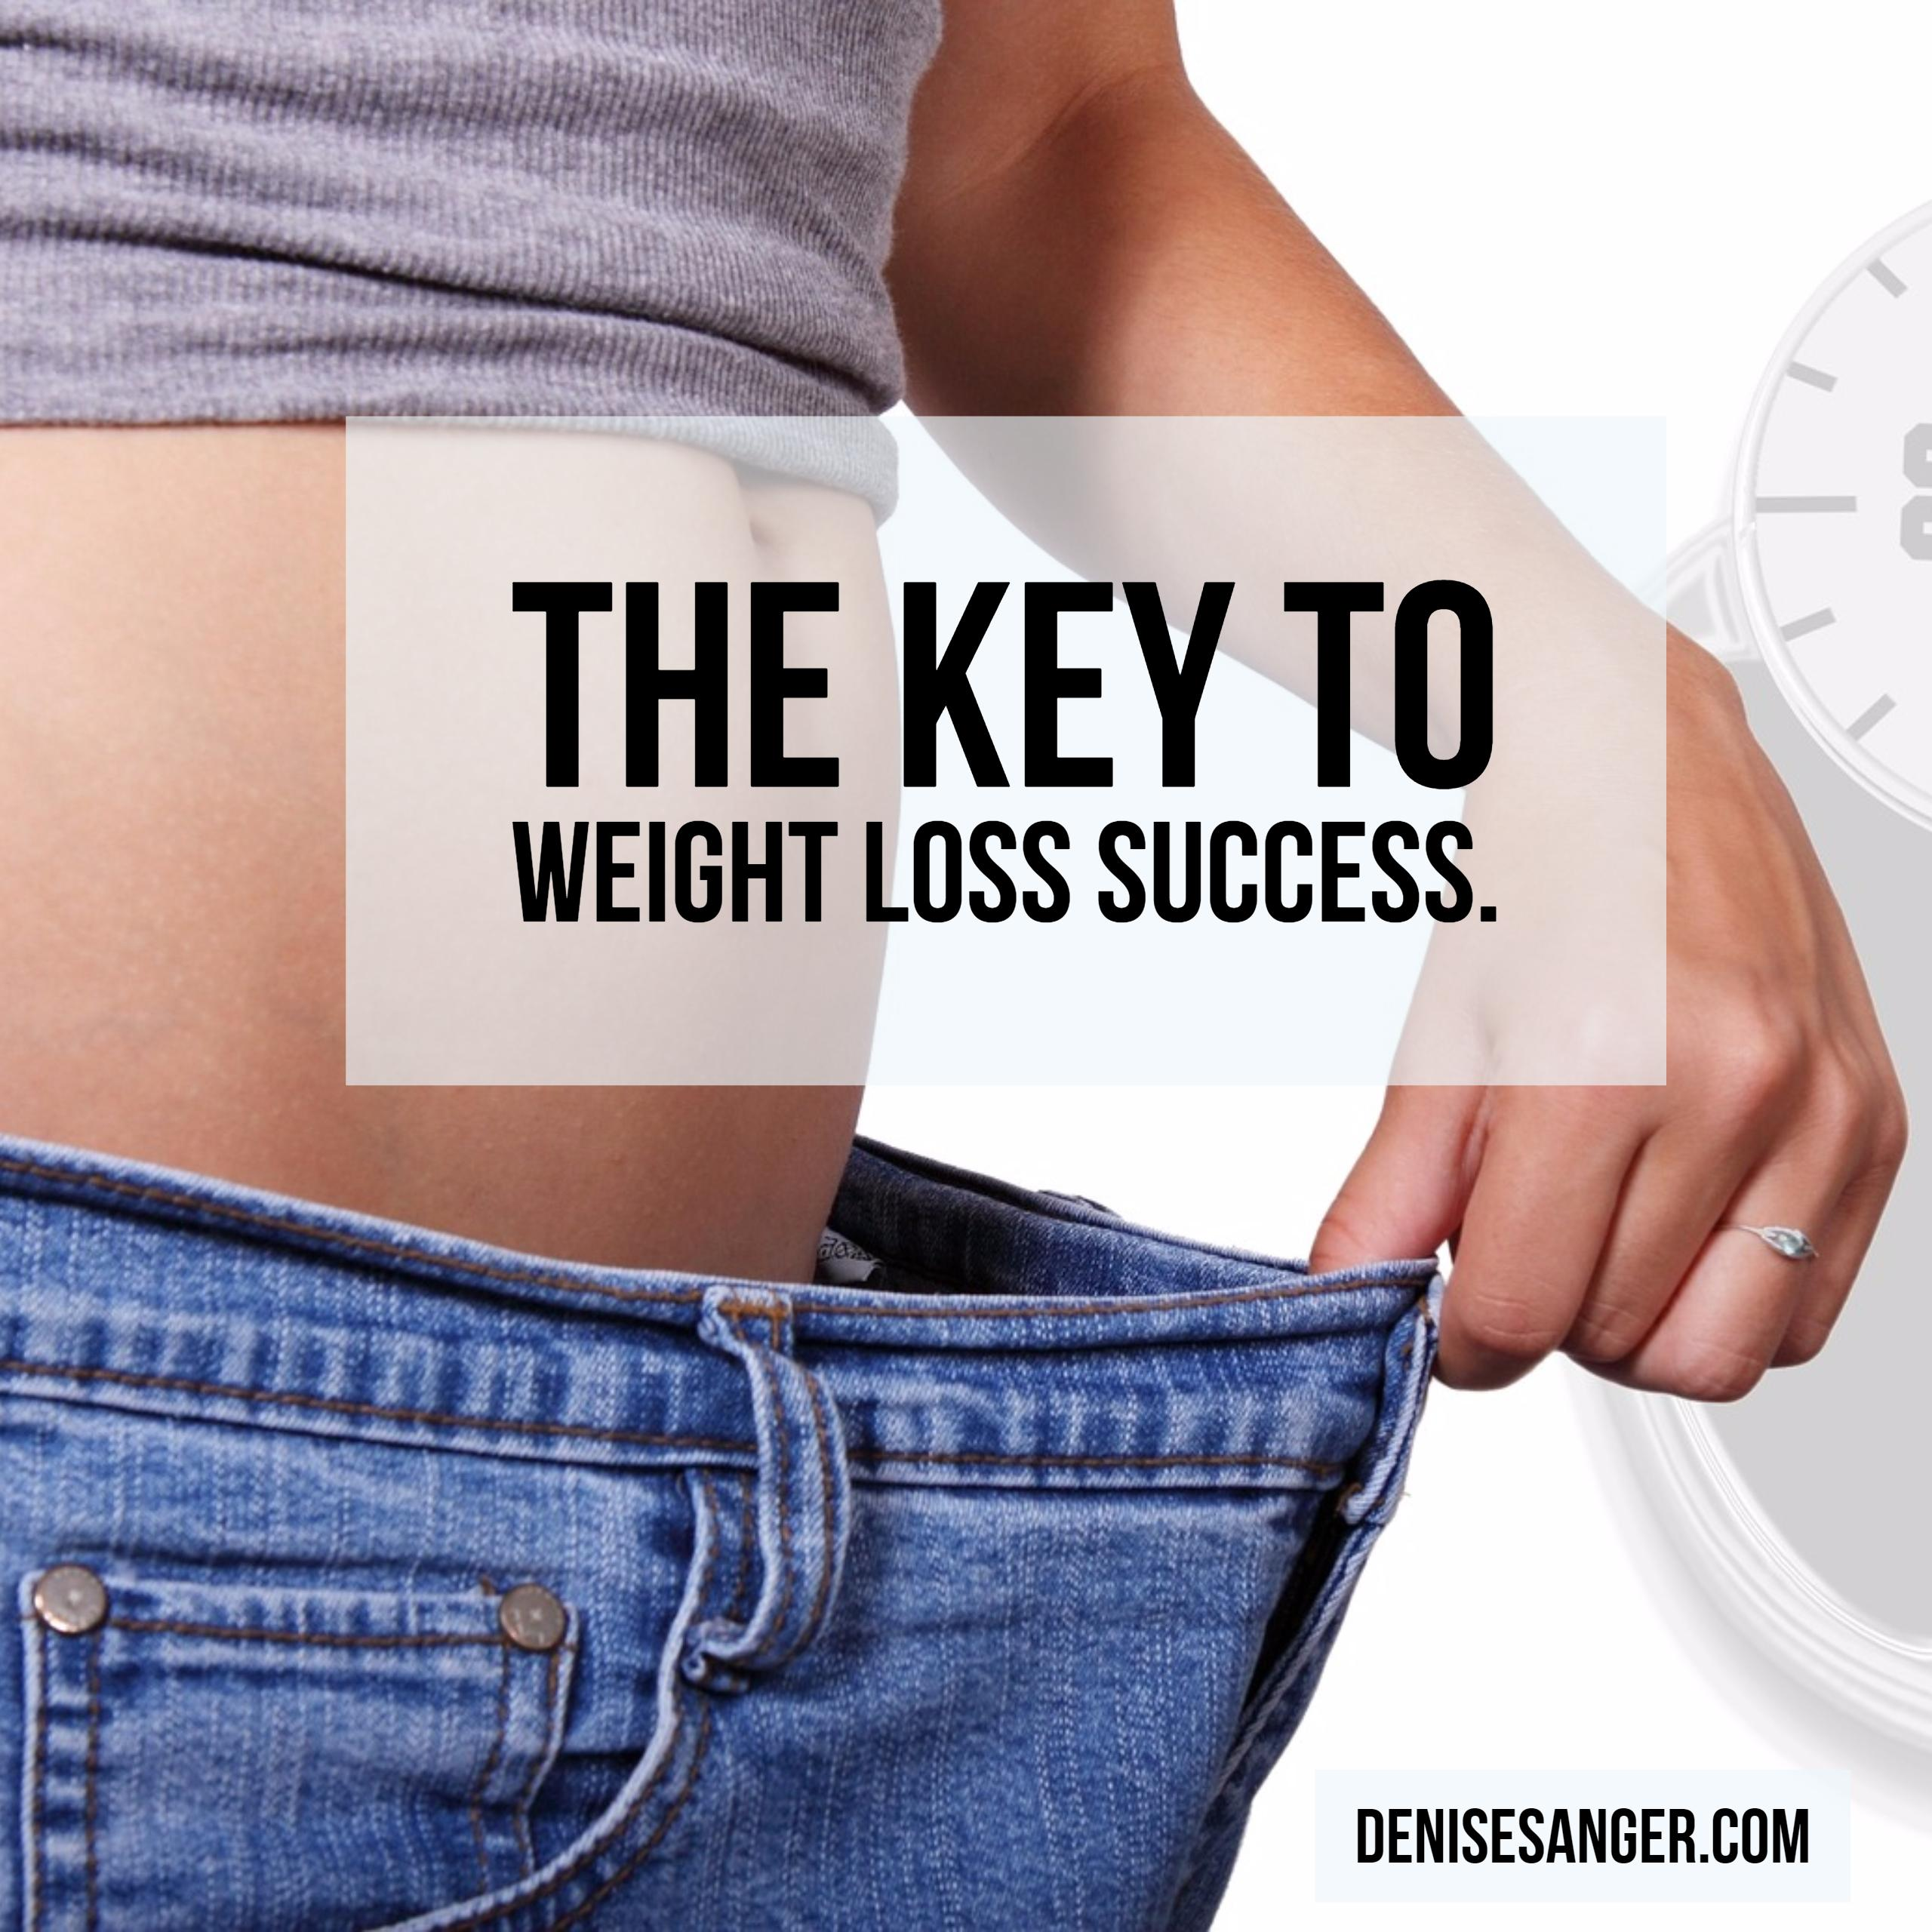 Want to know the key to weight loss success?